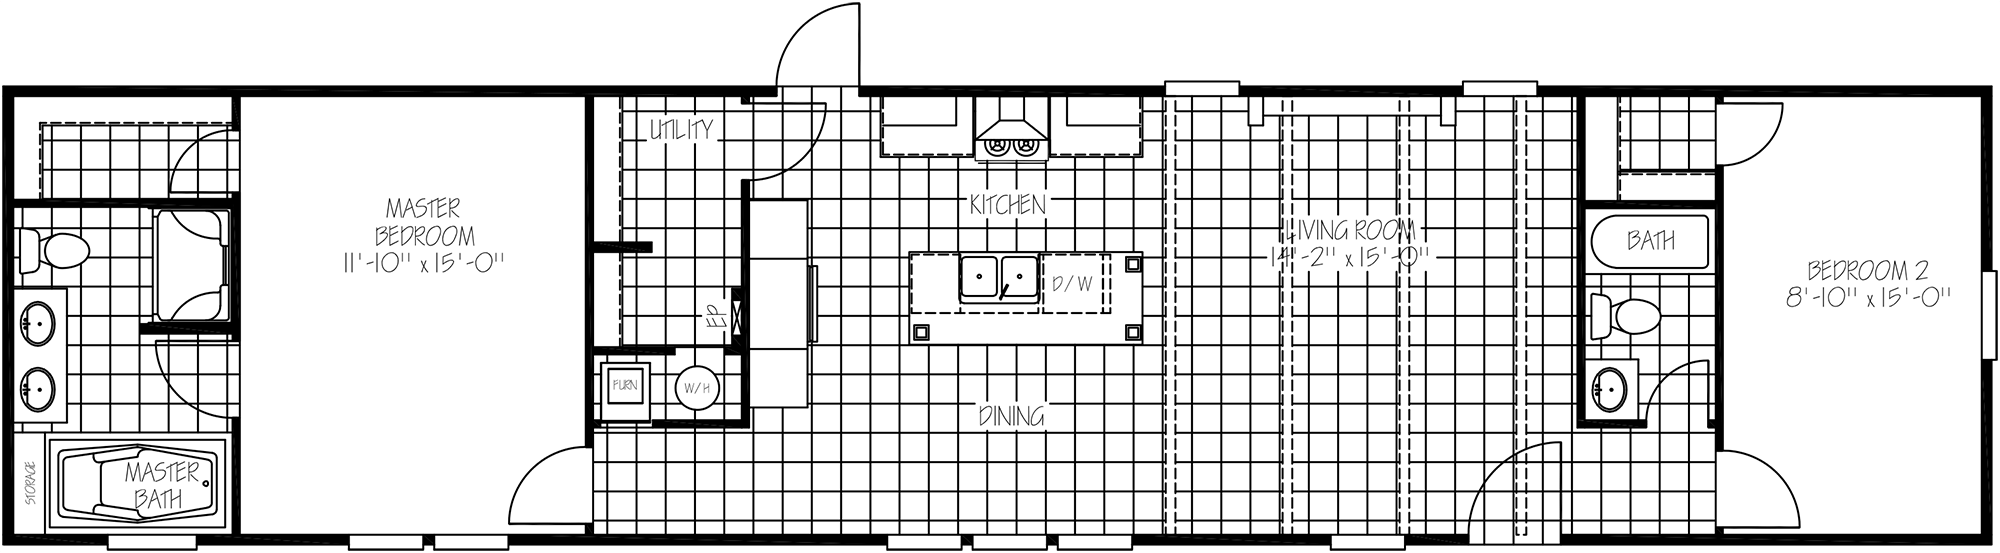 The Linc Floorplan